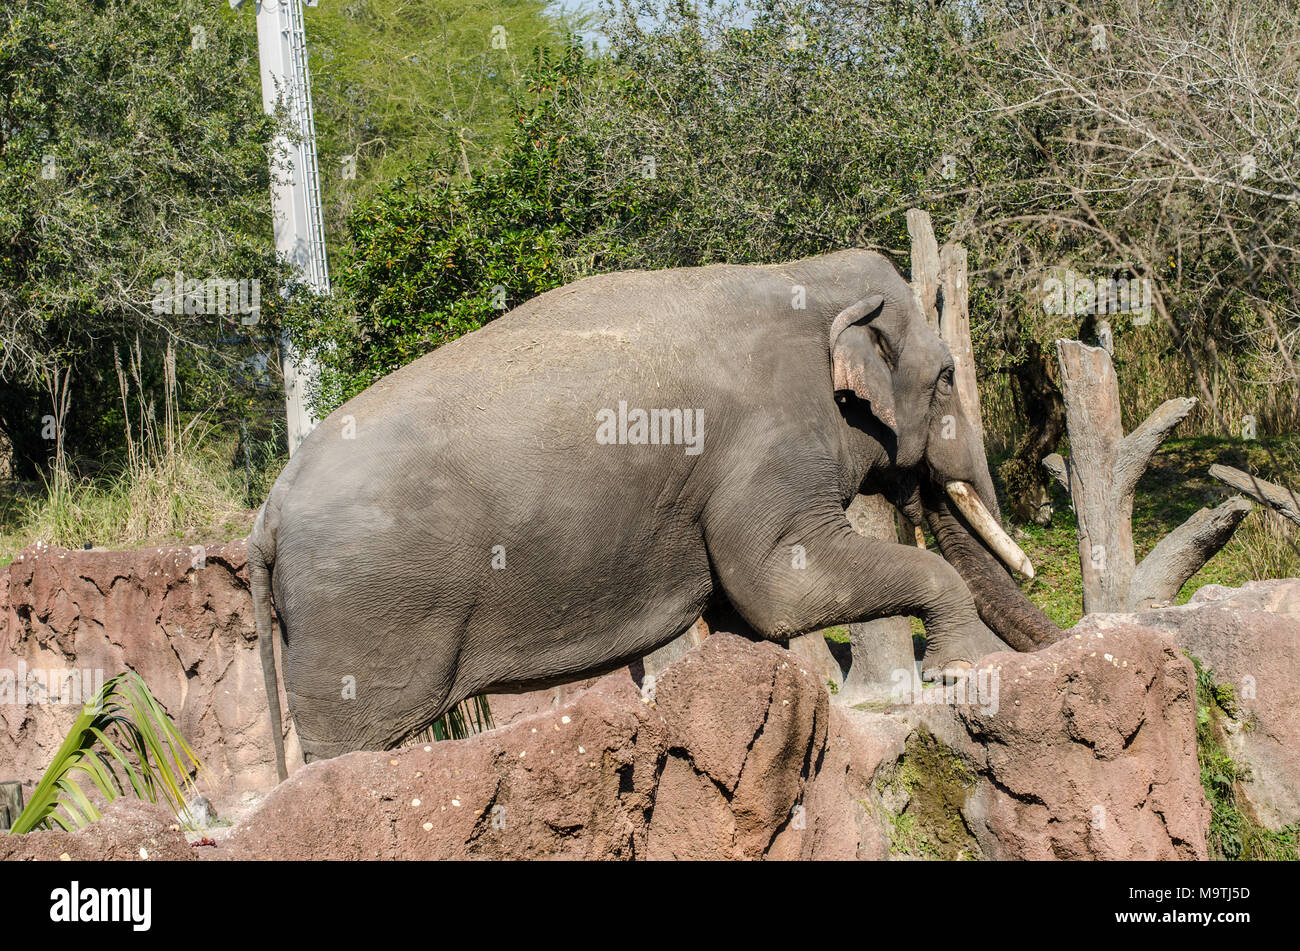 Elephants eating and enjoying the sunshine at Busch Gardens in Florida - Stock Image